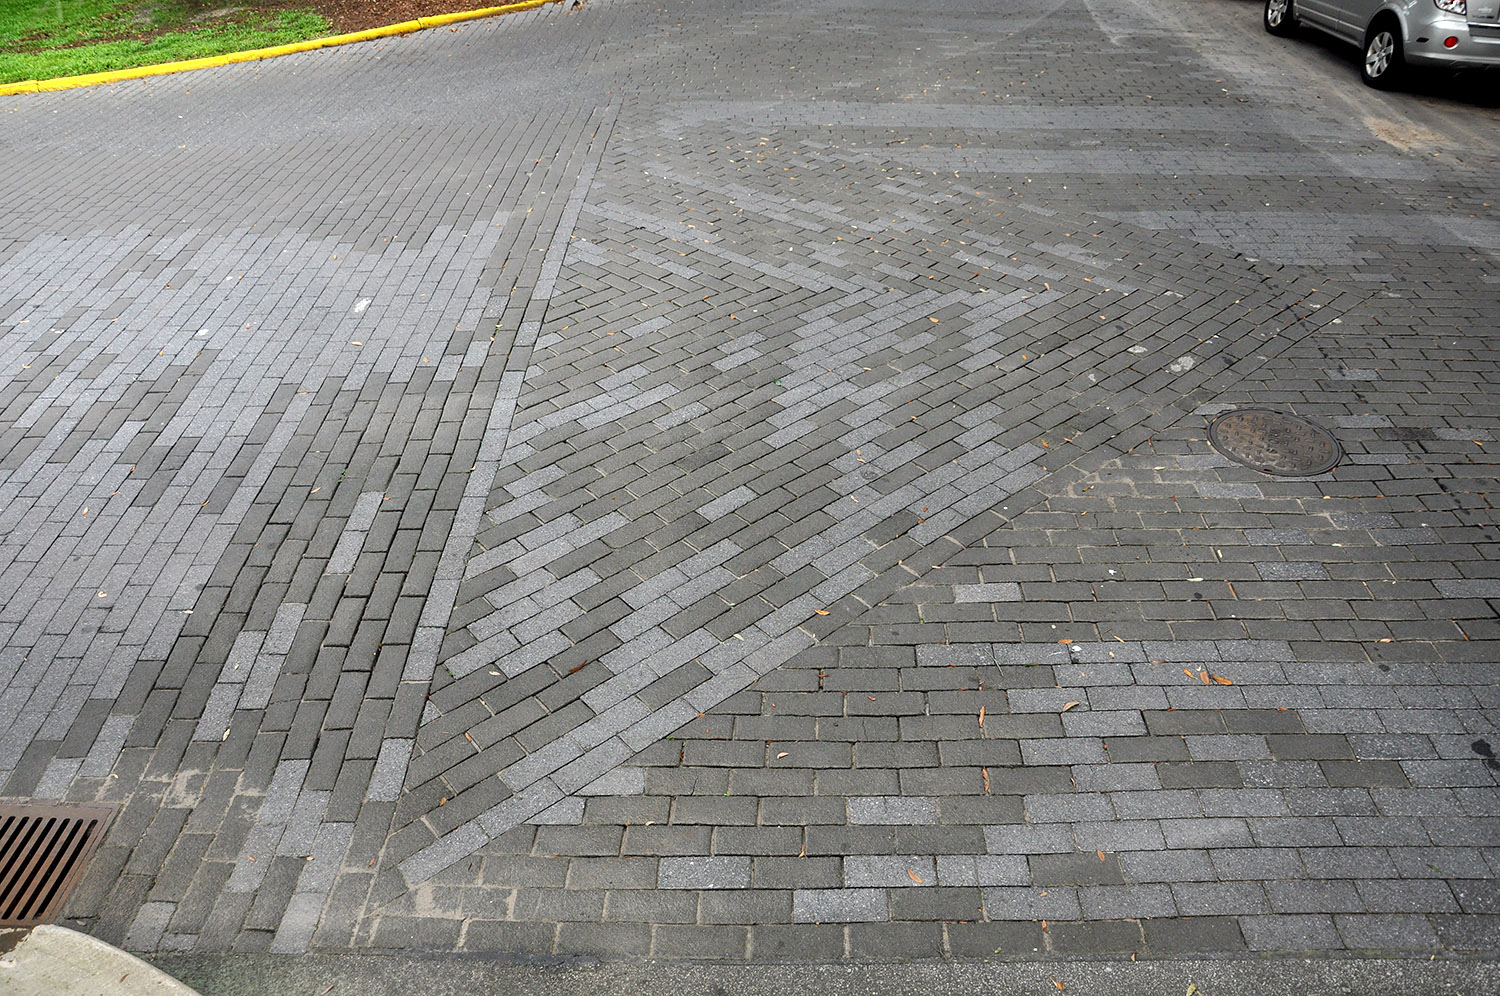 Asphalt blocks laid in a triangular formation and showing the insertion of lighter newer blocks, intersection of Barnard and West Gordon Streets, Savannah, Georgia, 2013. Photo by author.